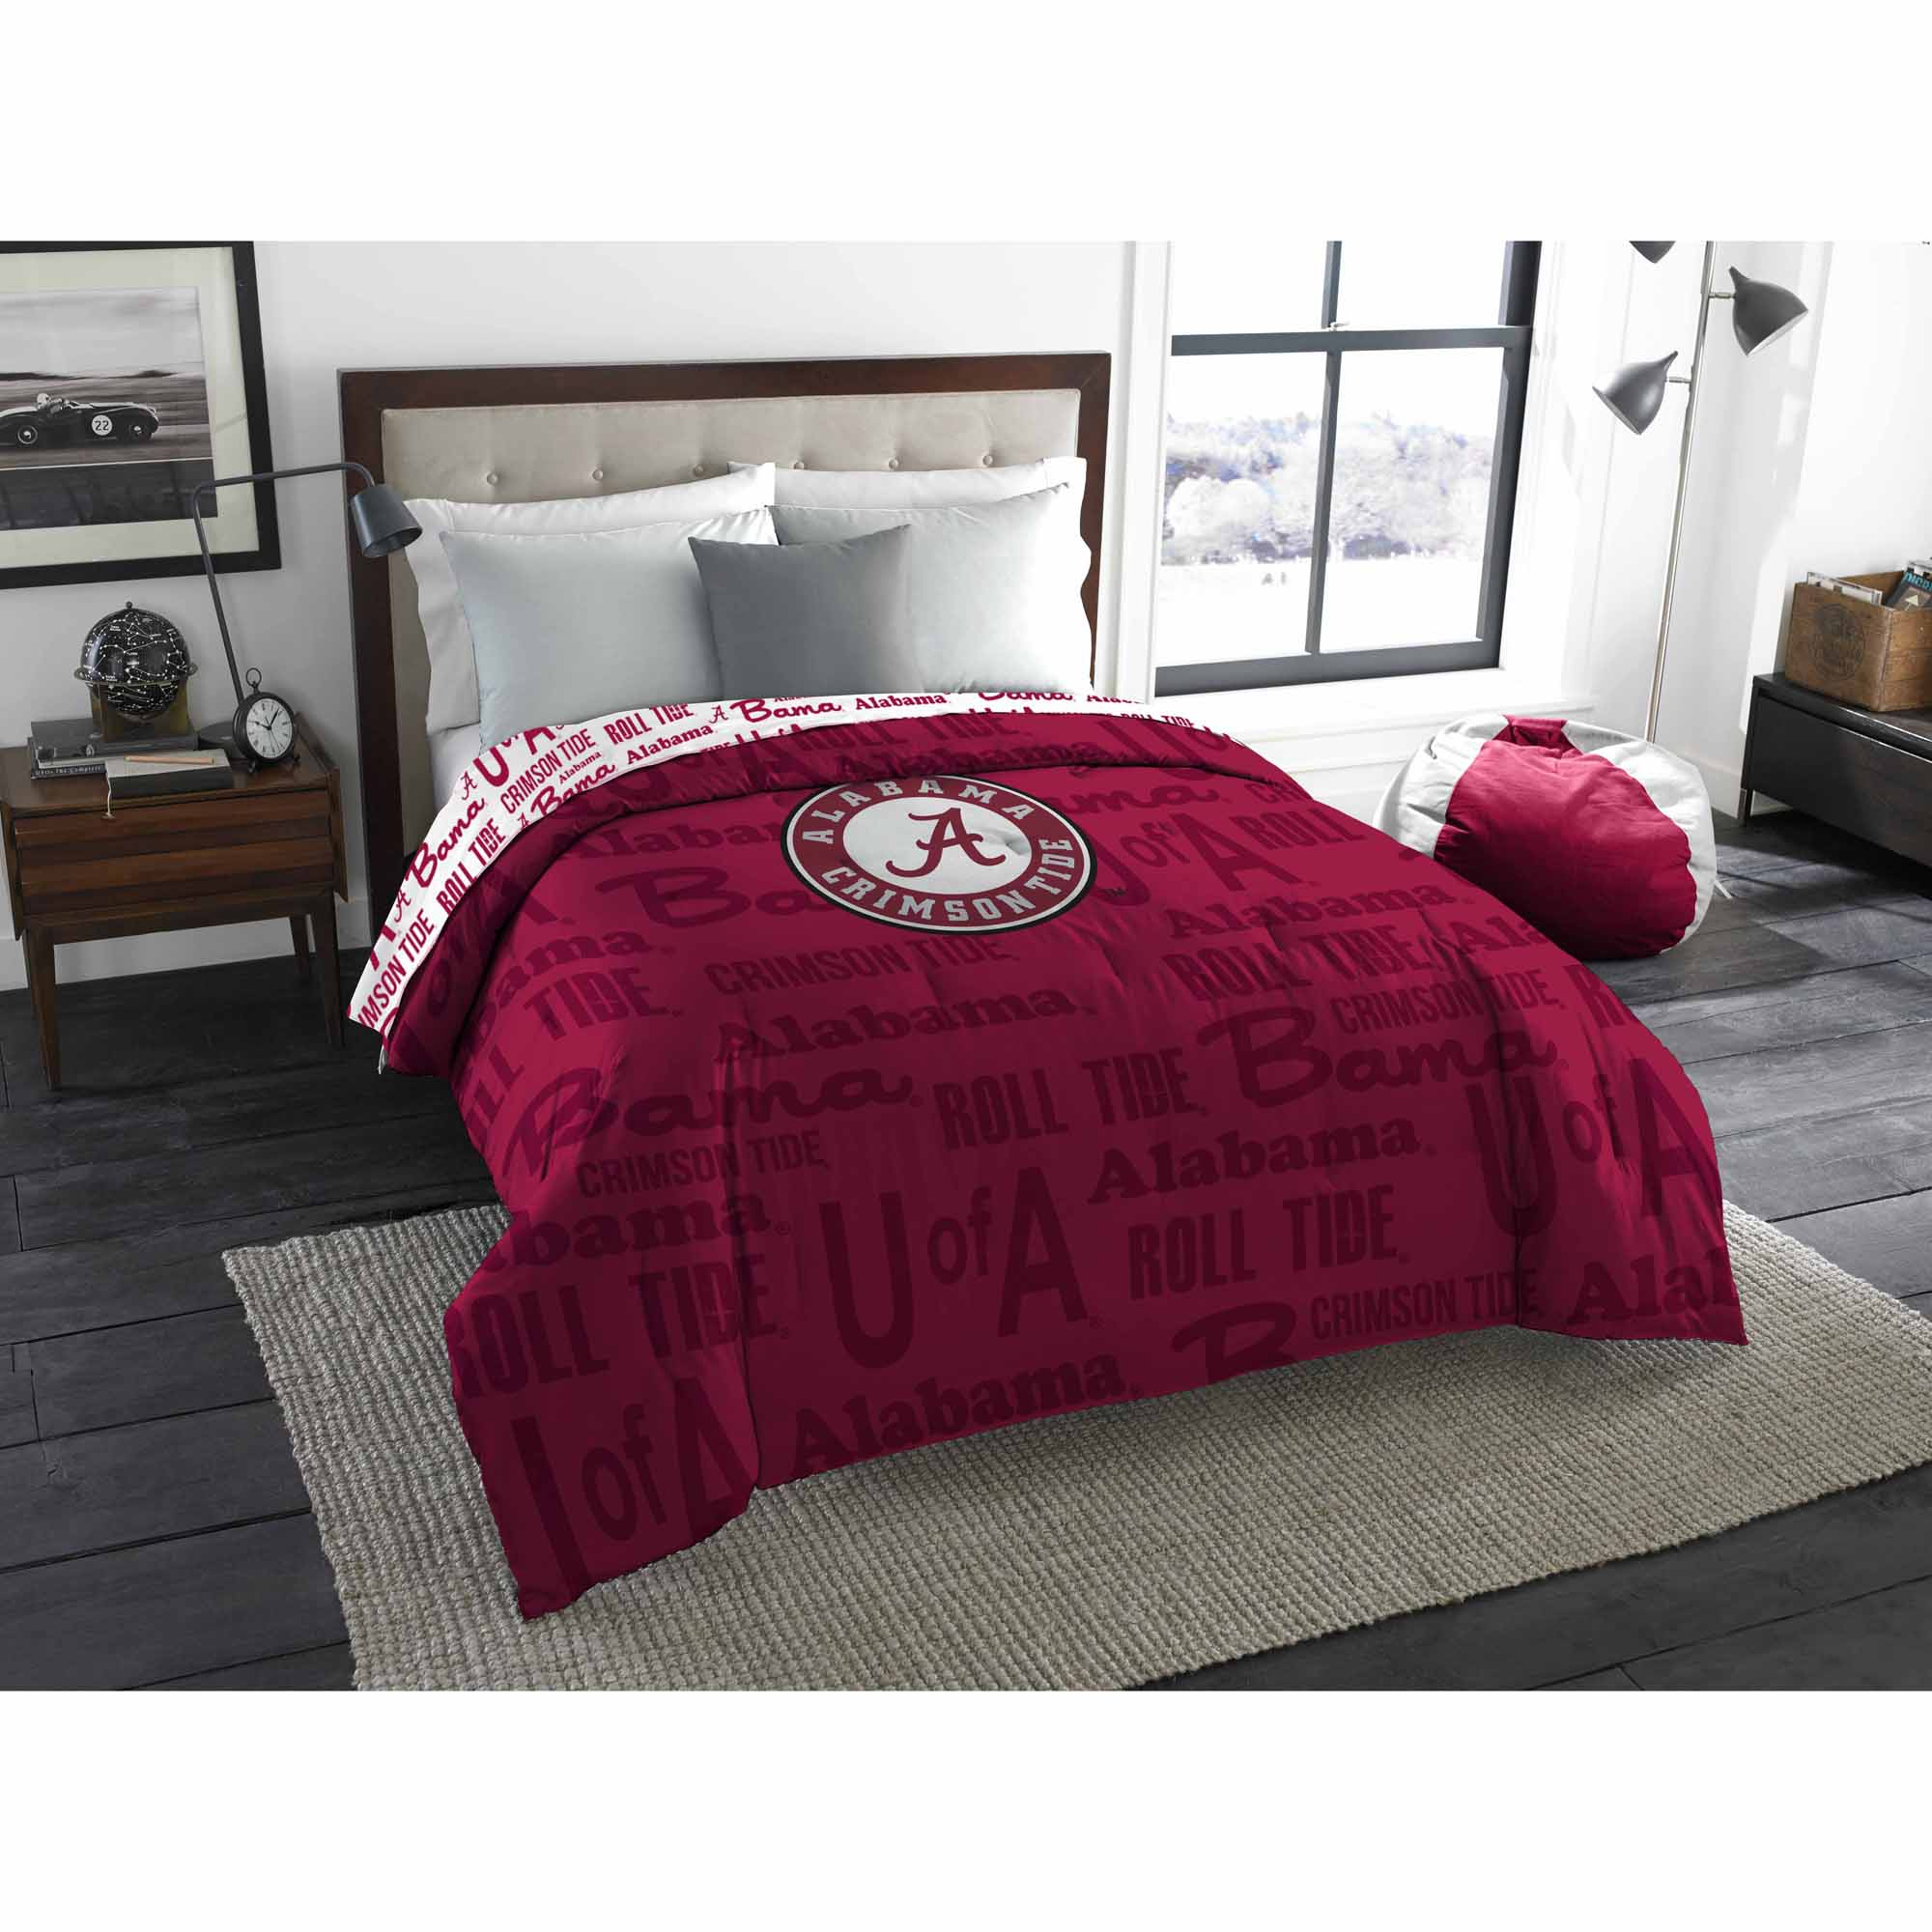 Alabama Anthem Twin/Full Bedding Comforter